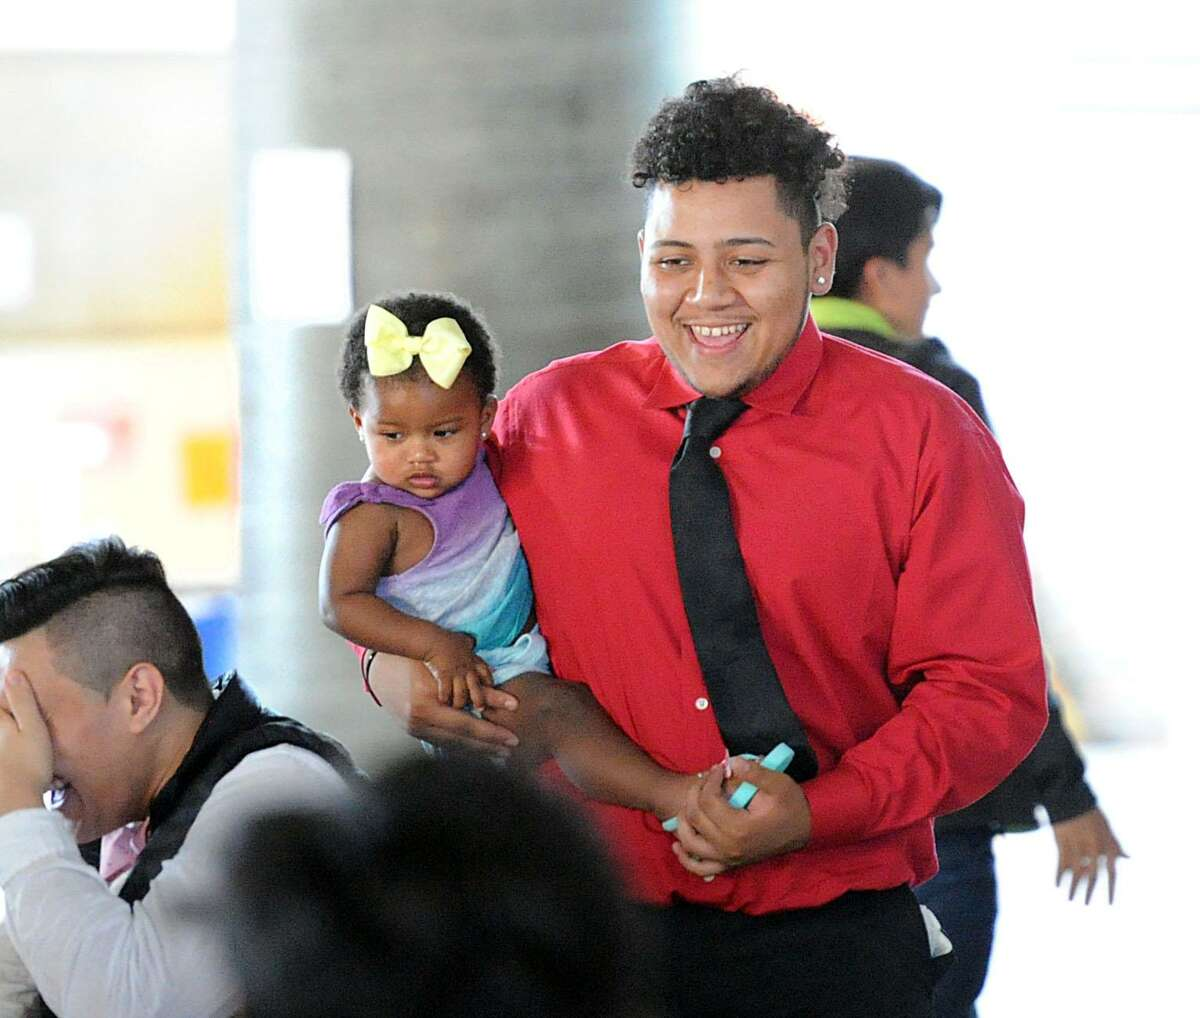 Holding his one-year-old niece Aileen Cevallos, Jacob Hernandez, 18, smiles during his Greenwich High School AVID Graduation Ceremony in the student center at Greenwich High School, Conn., Thursday, June 1, 2017. Hernandez said he will be attending Eastern Connecticut State University in the fall. The Advancement Via Individual Determination program (AVID), targets students in the academic middle and mentors them throughout their school years to prepare them to succeed in college.